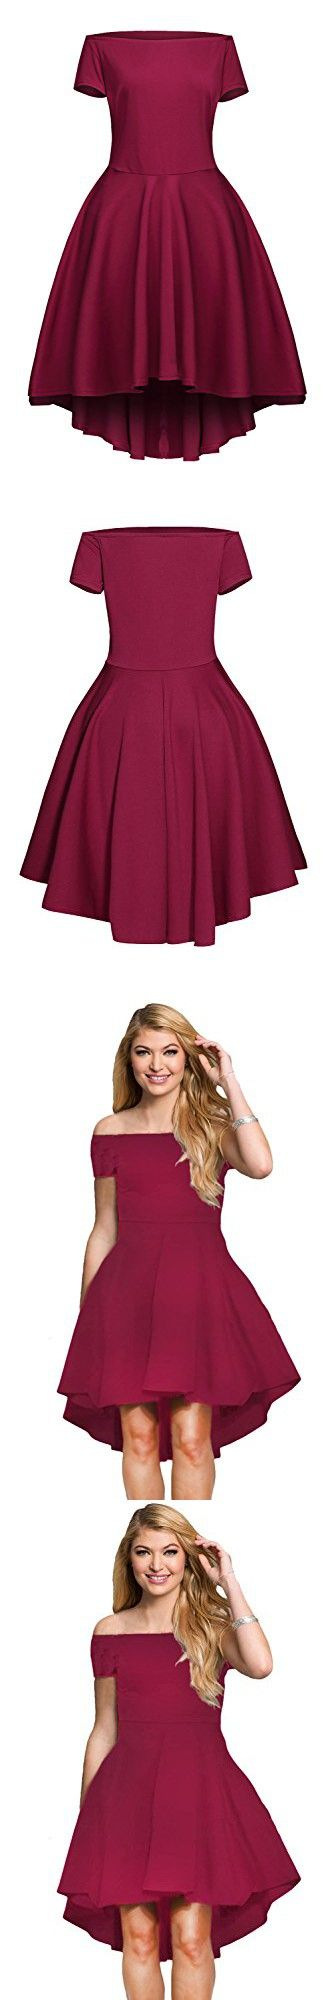 LOSRLY Womens Short Fit and Flare Bridesmaid Dress PRIME Dark Red Burgundy Wine Maroon S 4 6